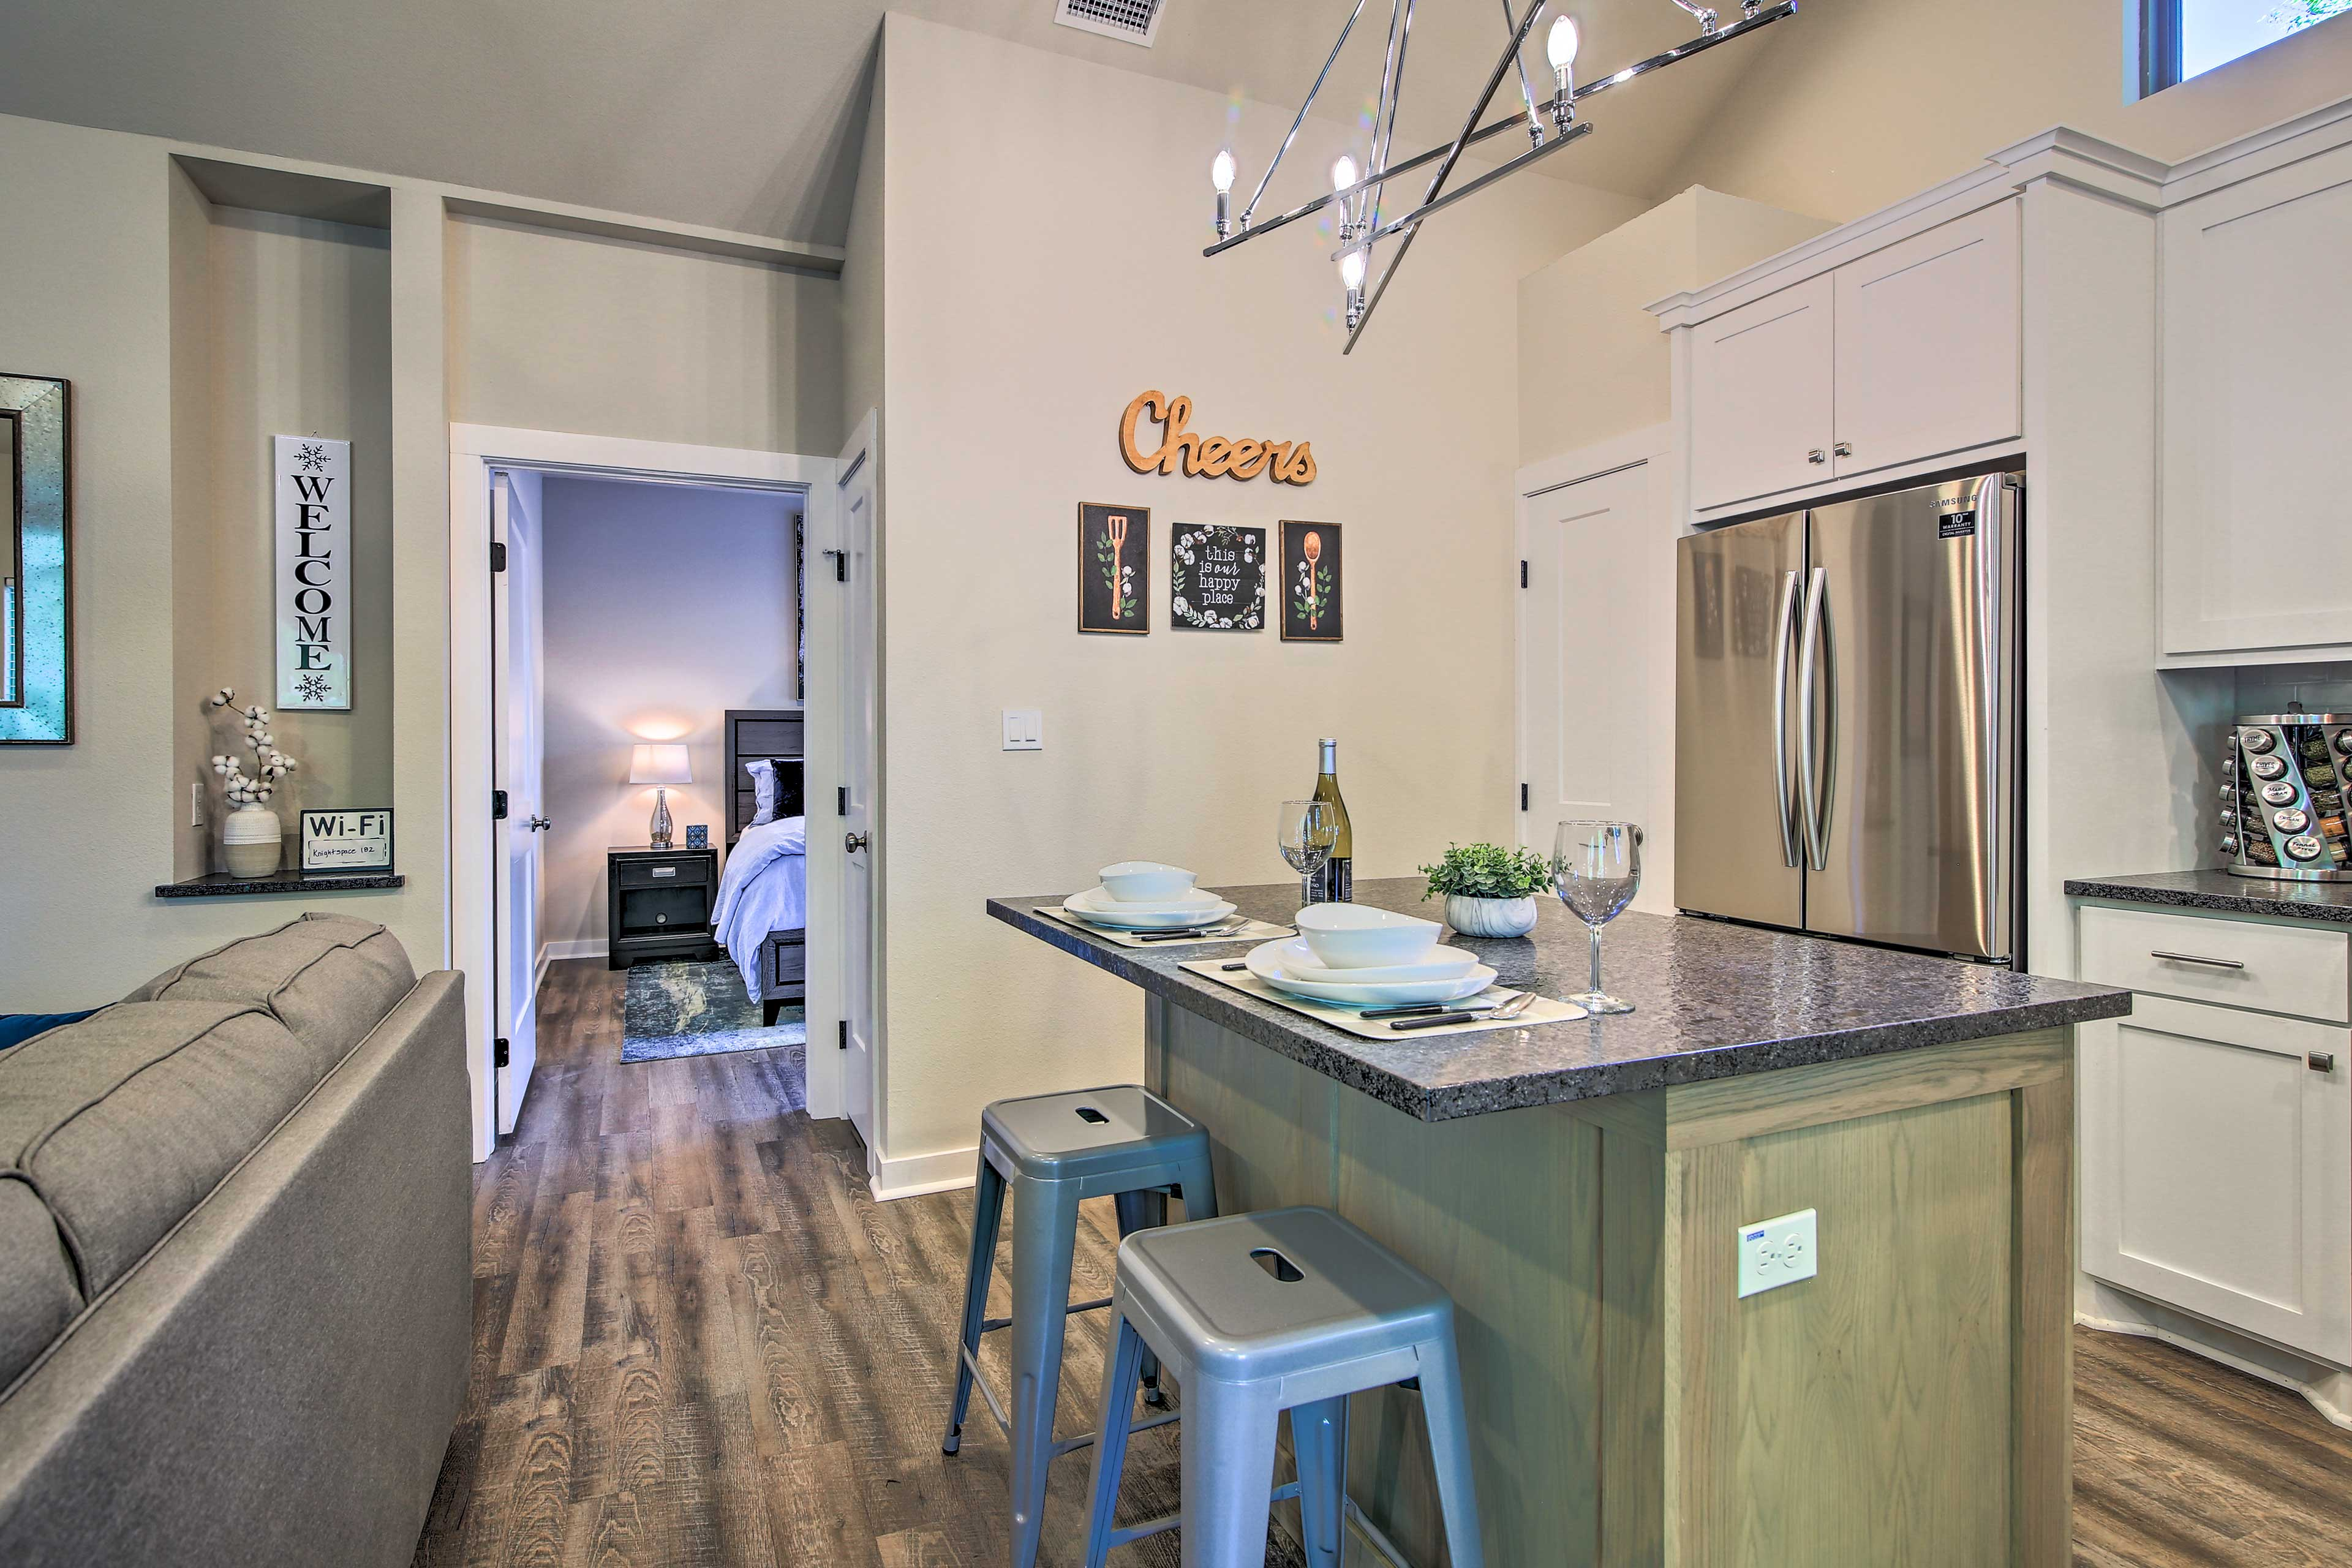 The full kitchen is outfitted with stainless steel appliances.